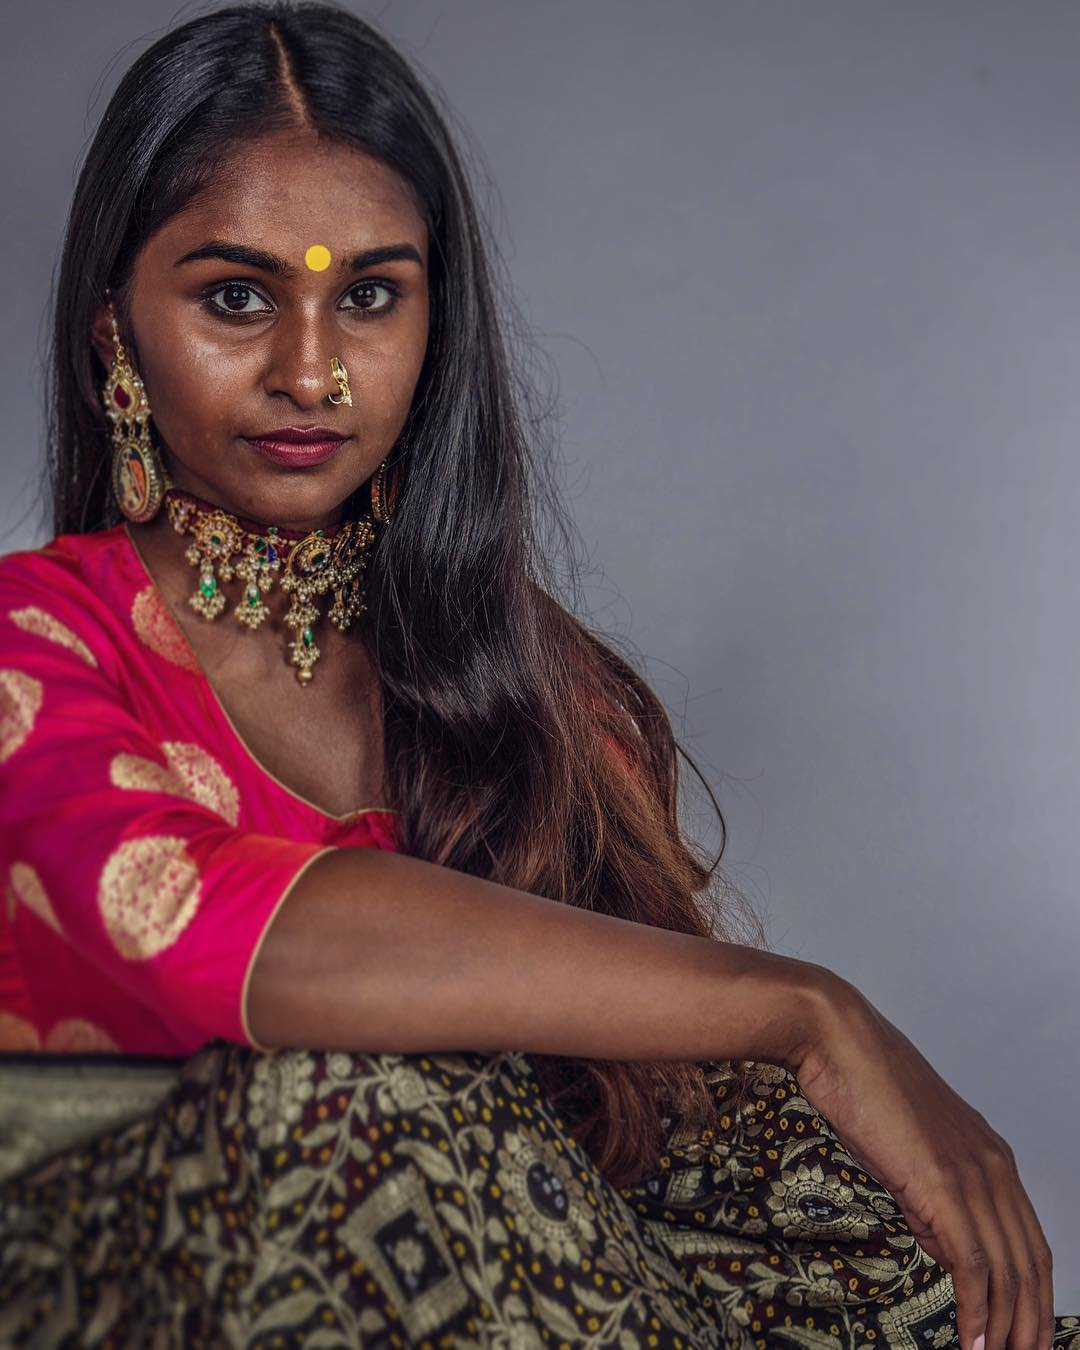 A Designer Is Breaking The Stereotype Of 'Only Fair Is Beautiful' By Featuring Stunning Dusky Models